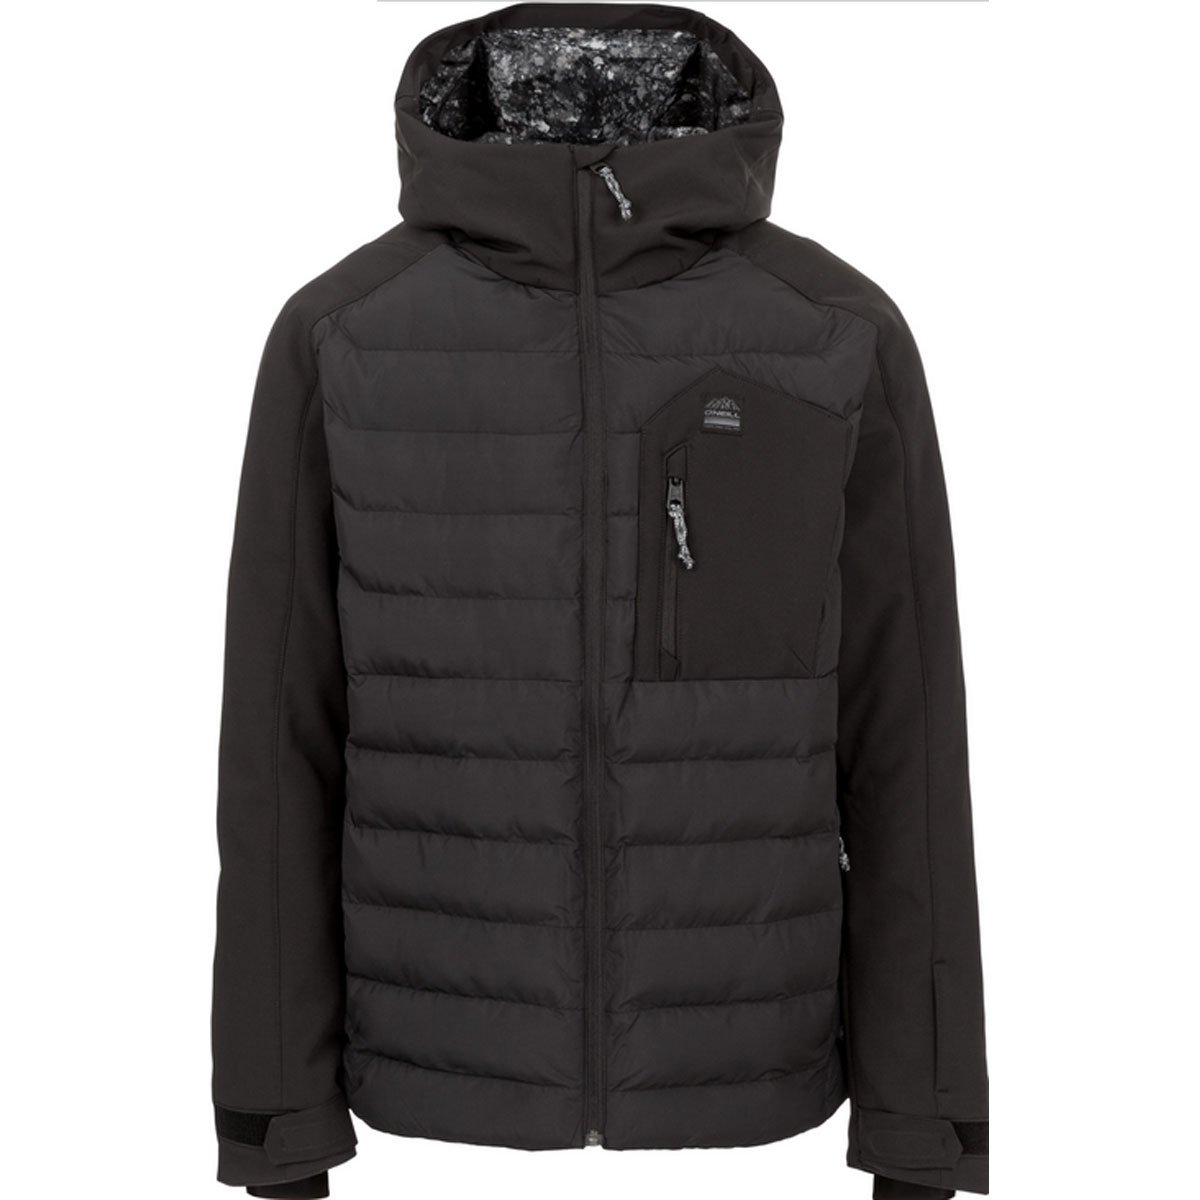 O'Neill Mens 37-N Jacket Black Out MD One Size